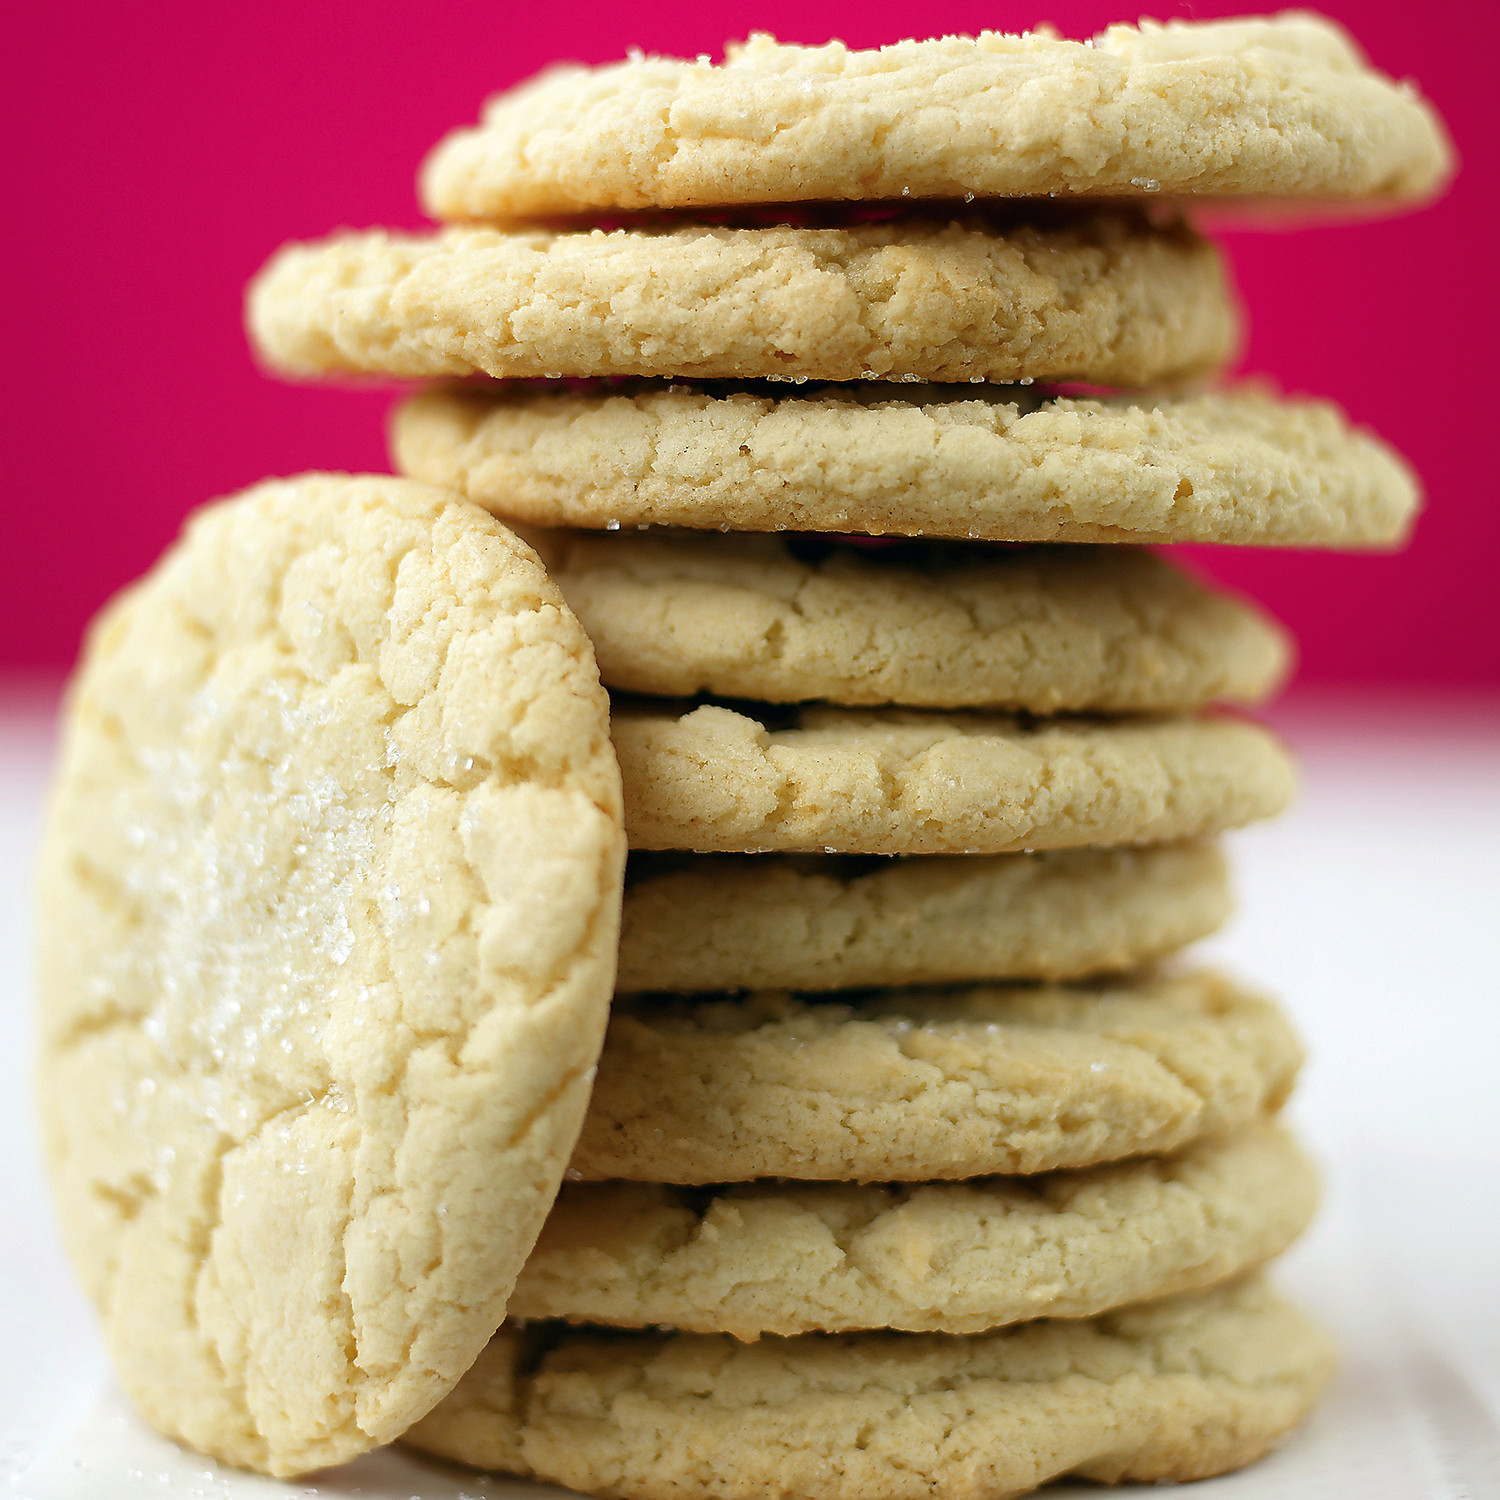 Oatmeal cookie recipe variations